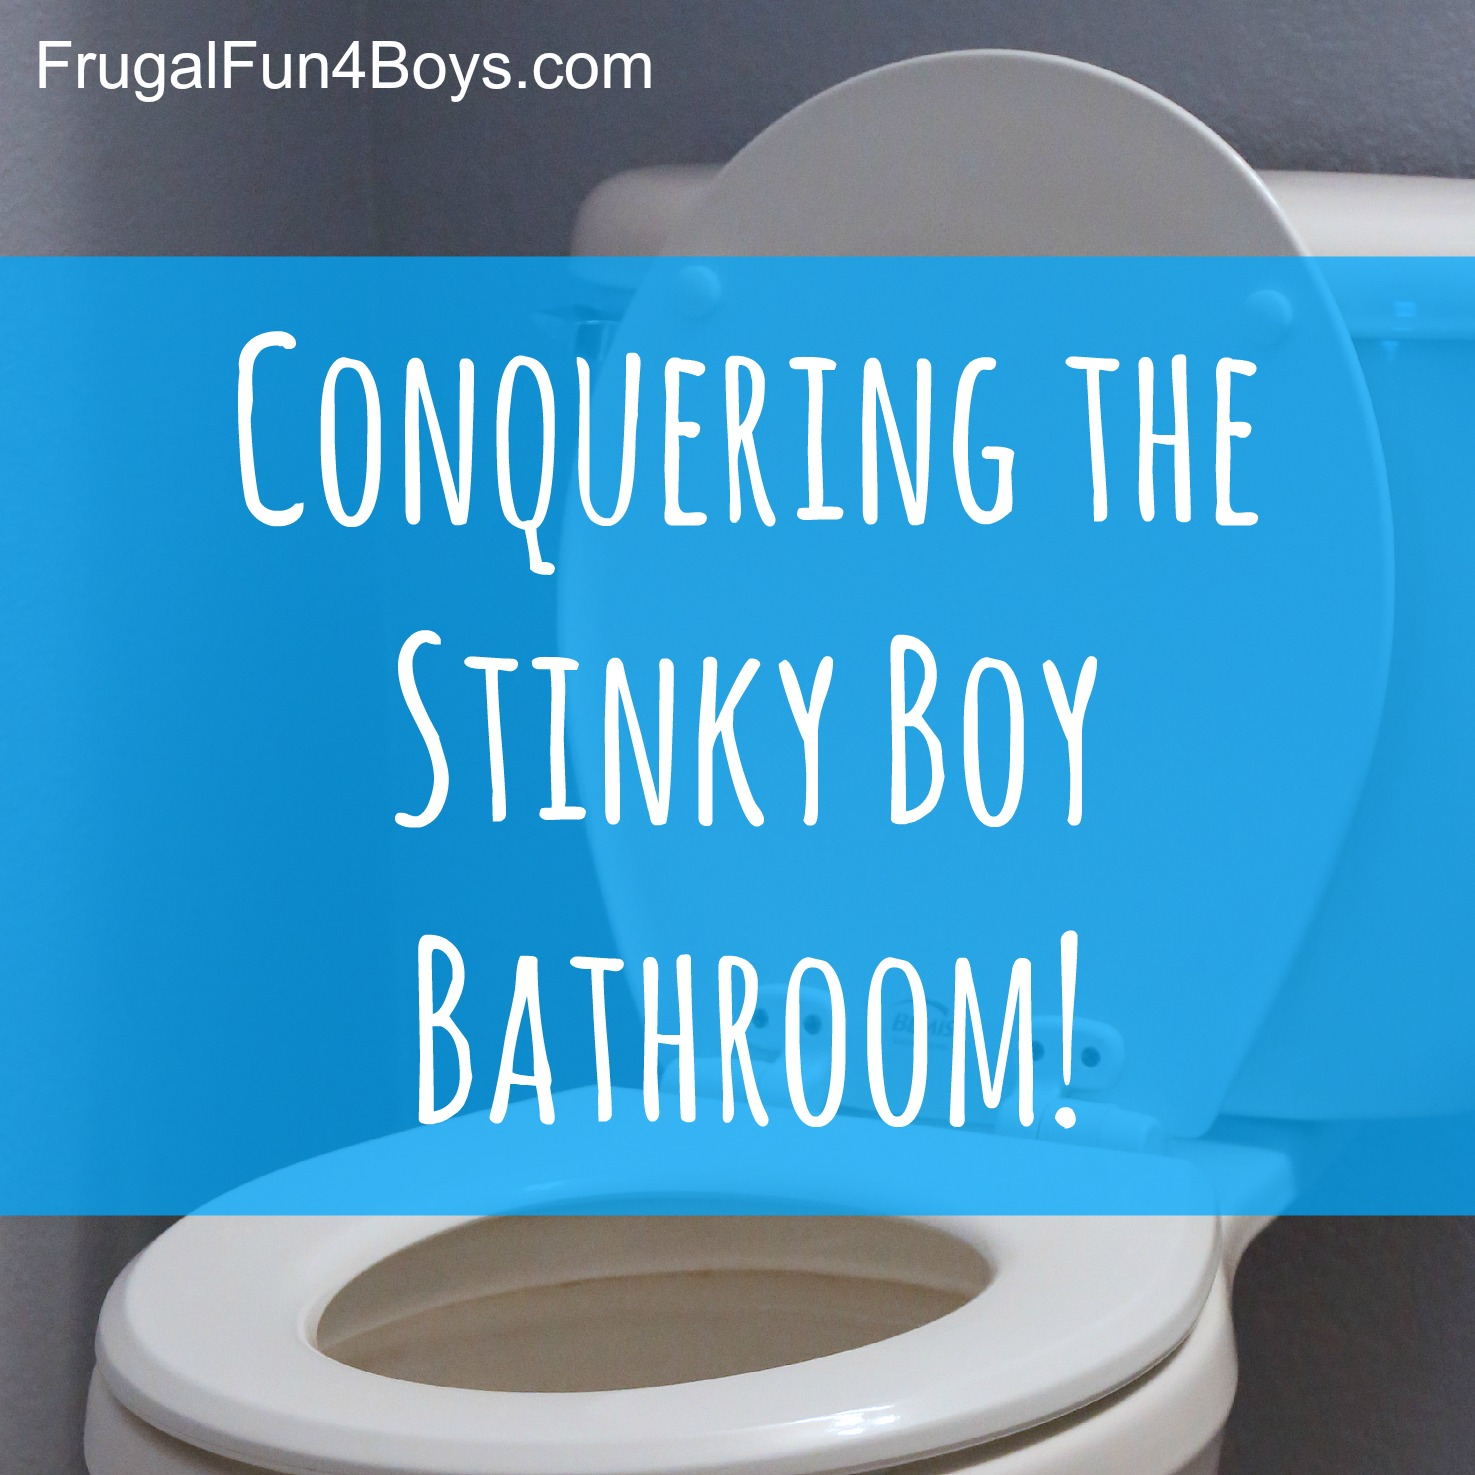 Conquering The Stinky Boy Bathroom   Ideas For Getting Rid Of The Lingering Pee  Smell!